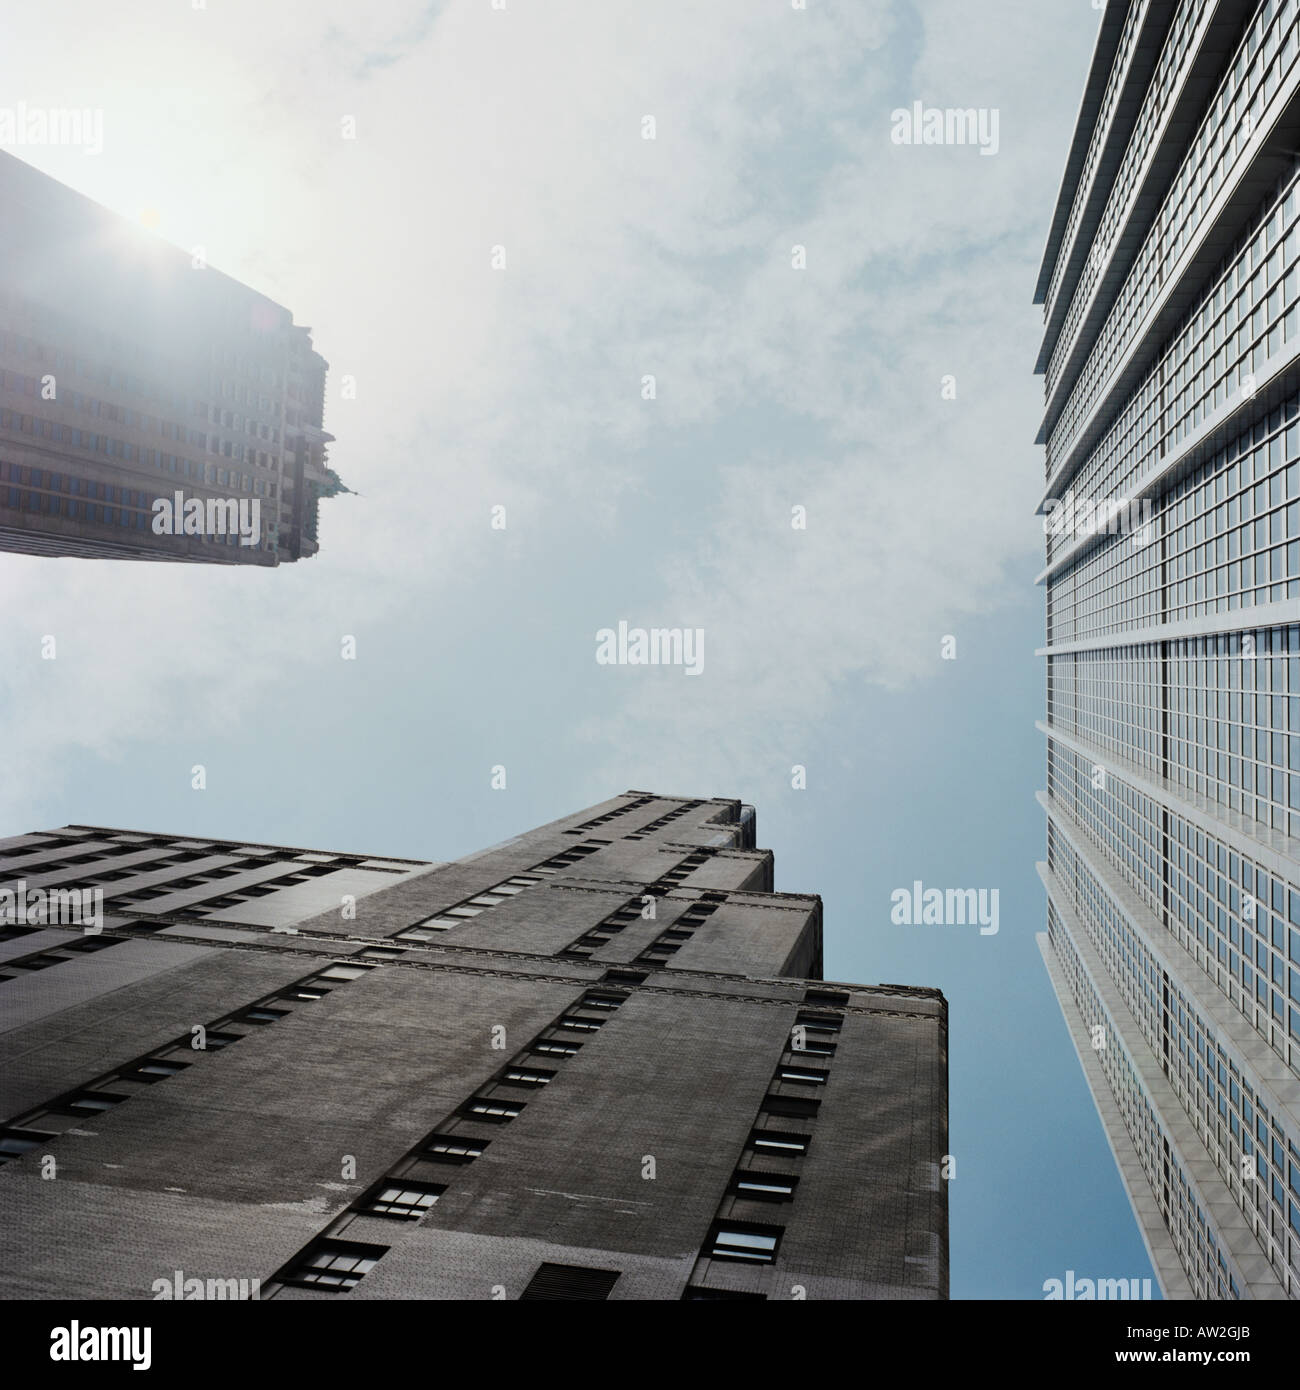 Multistorey structures - Stock Image